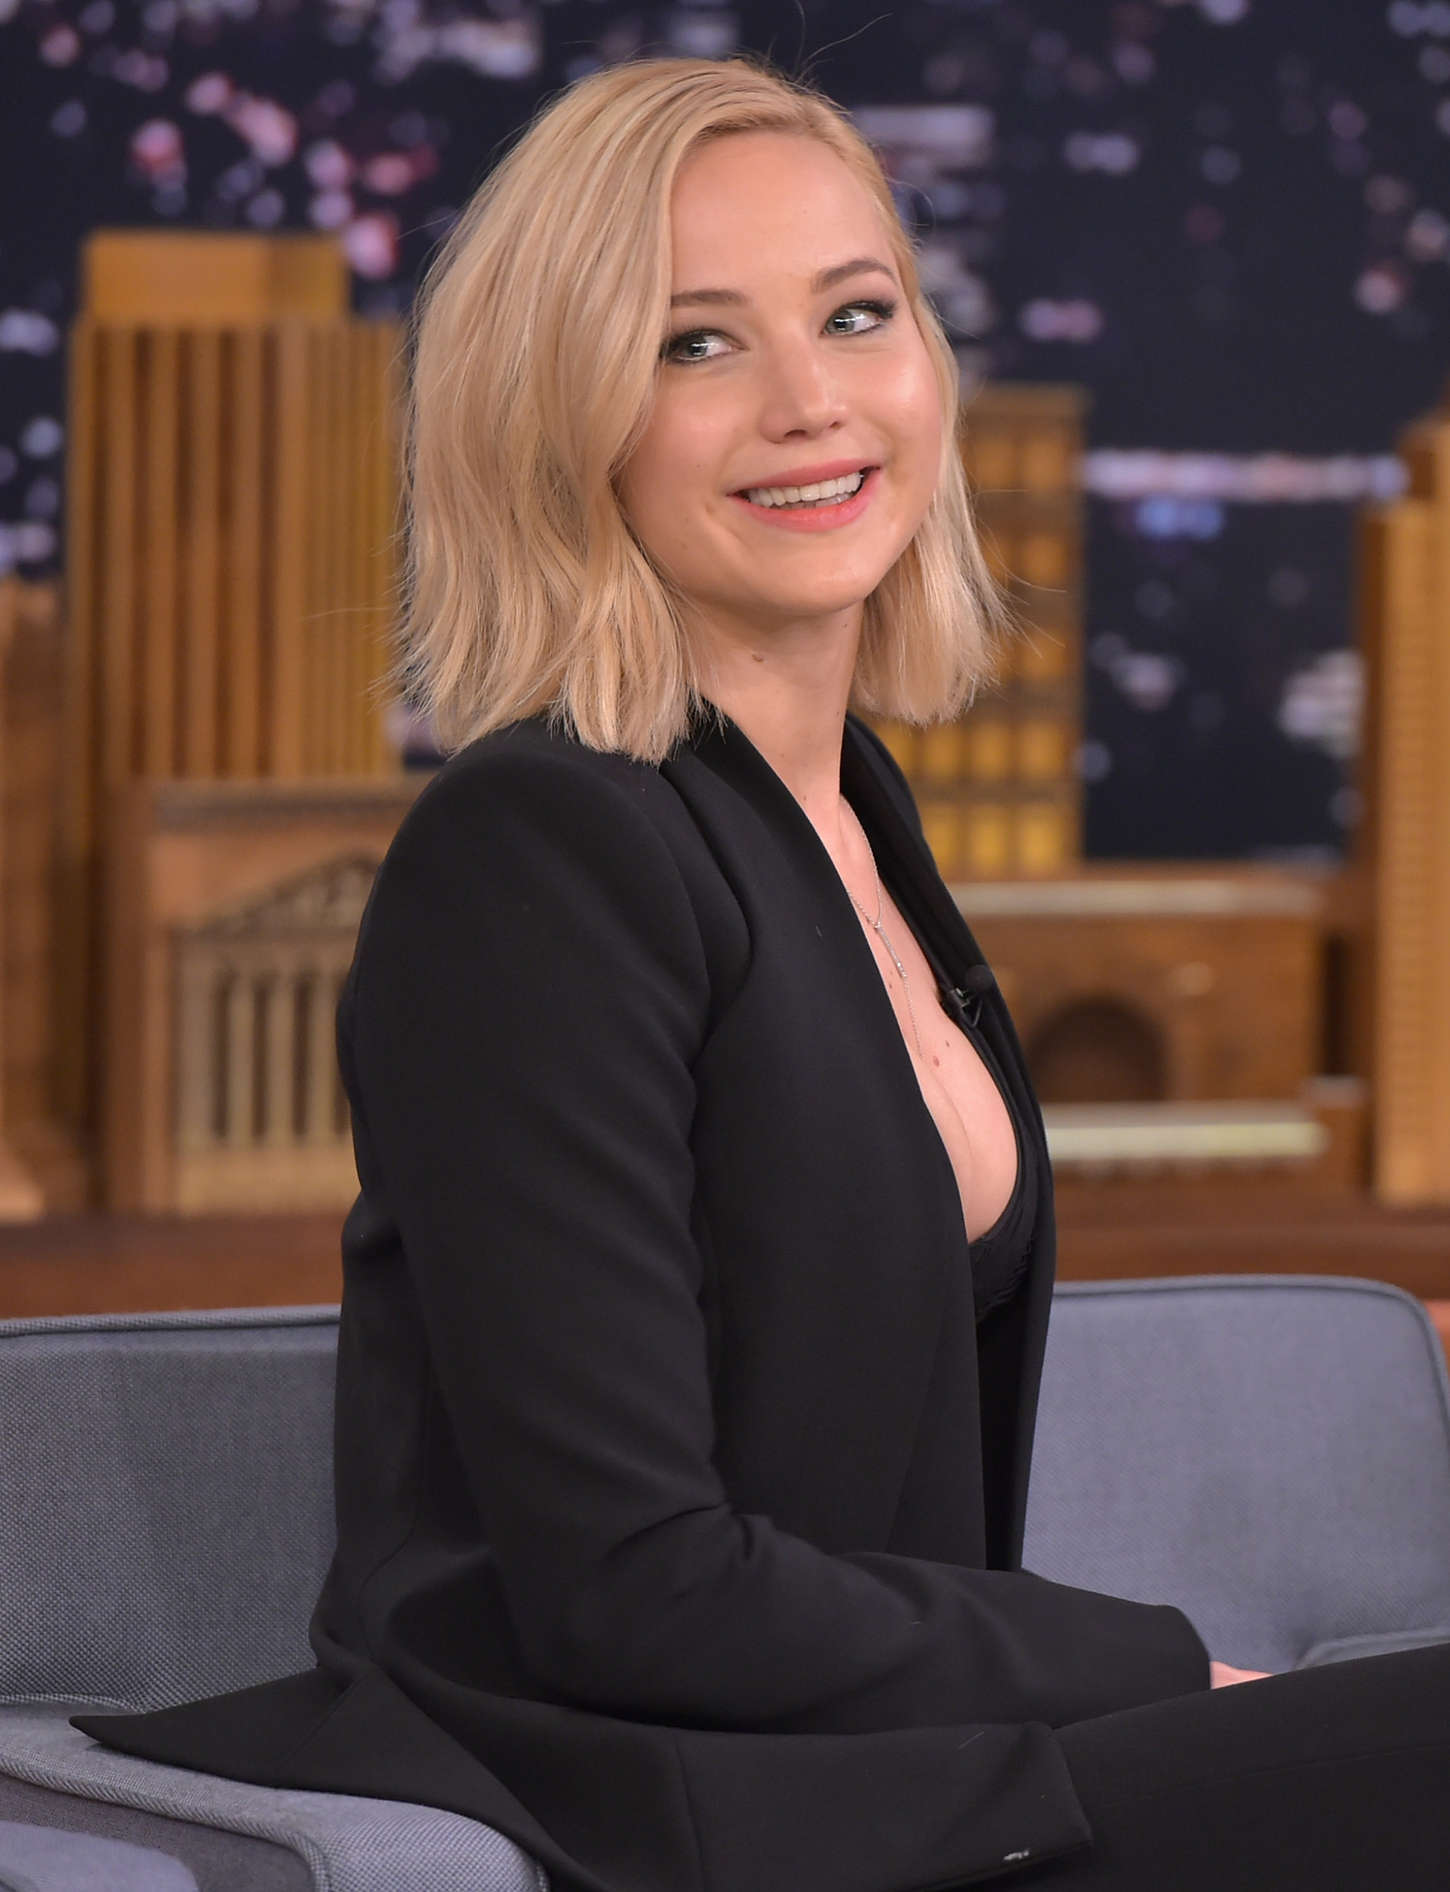 Jennifer lawrence hair jimmy fallon picture ideas with long bangs male